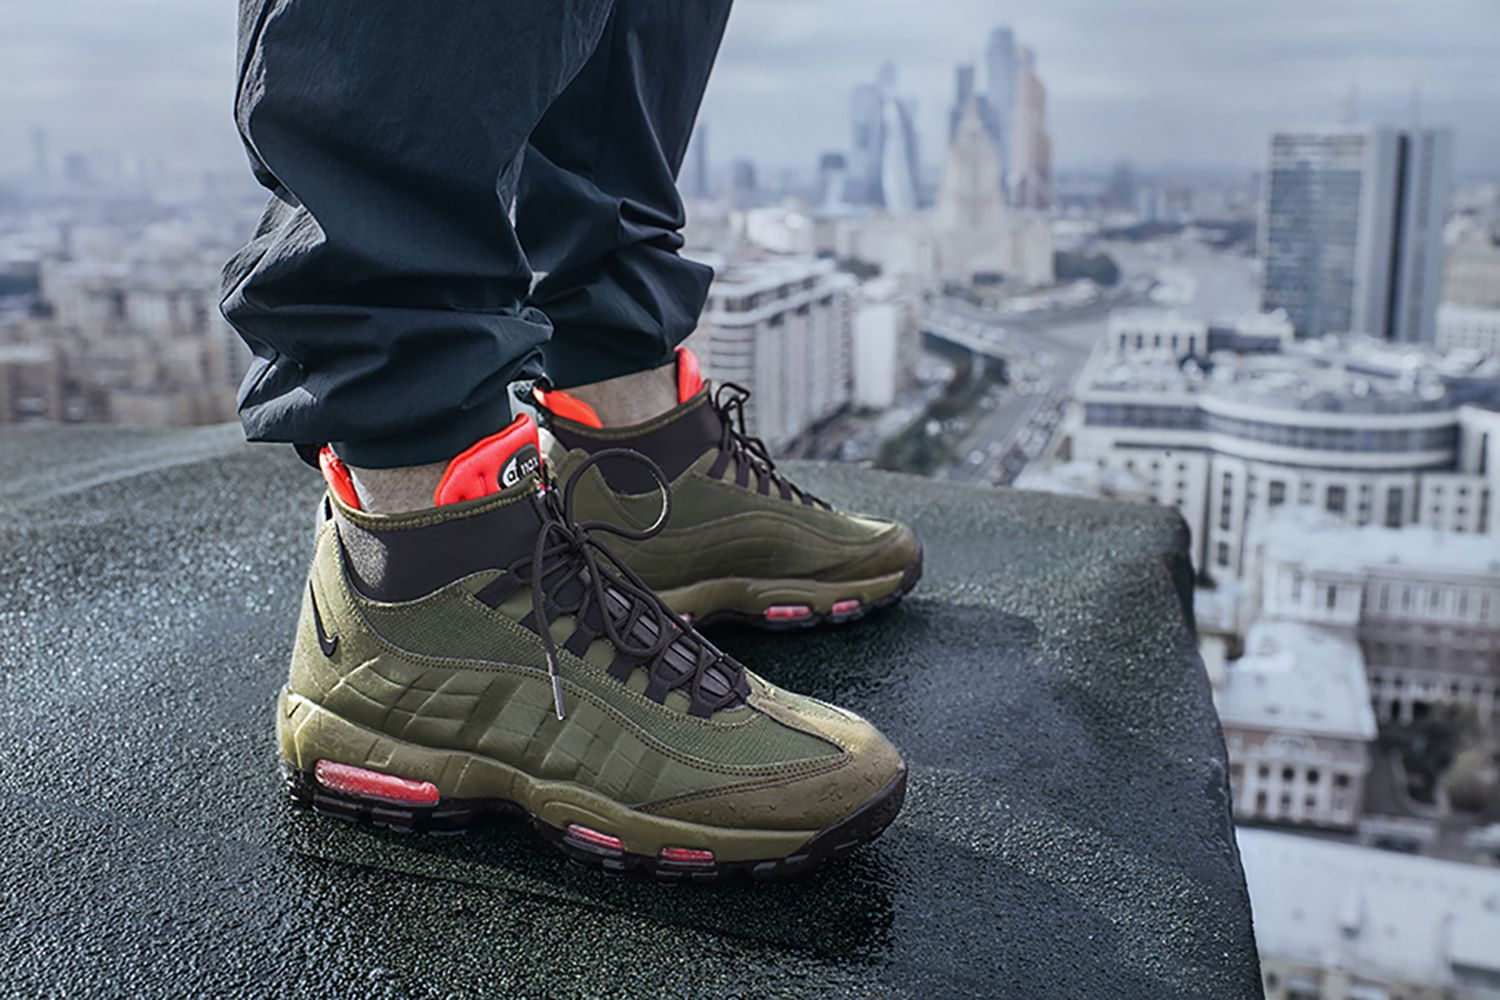 b6ad6aabe965 Nike Unveils the Sneakerboots 2015 Fall Winter Collection in Moscow ...